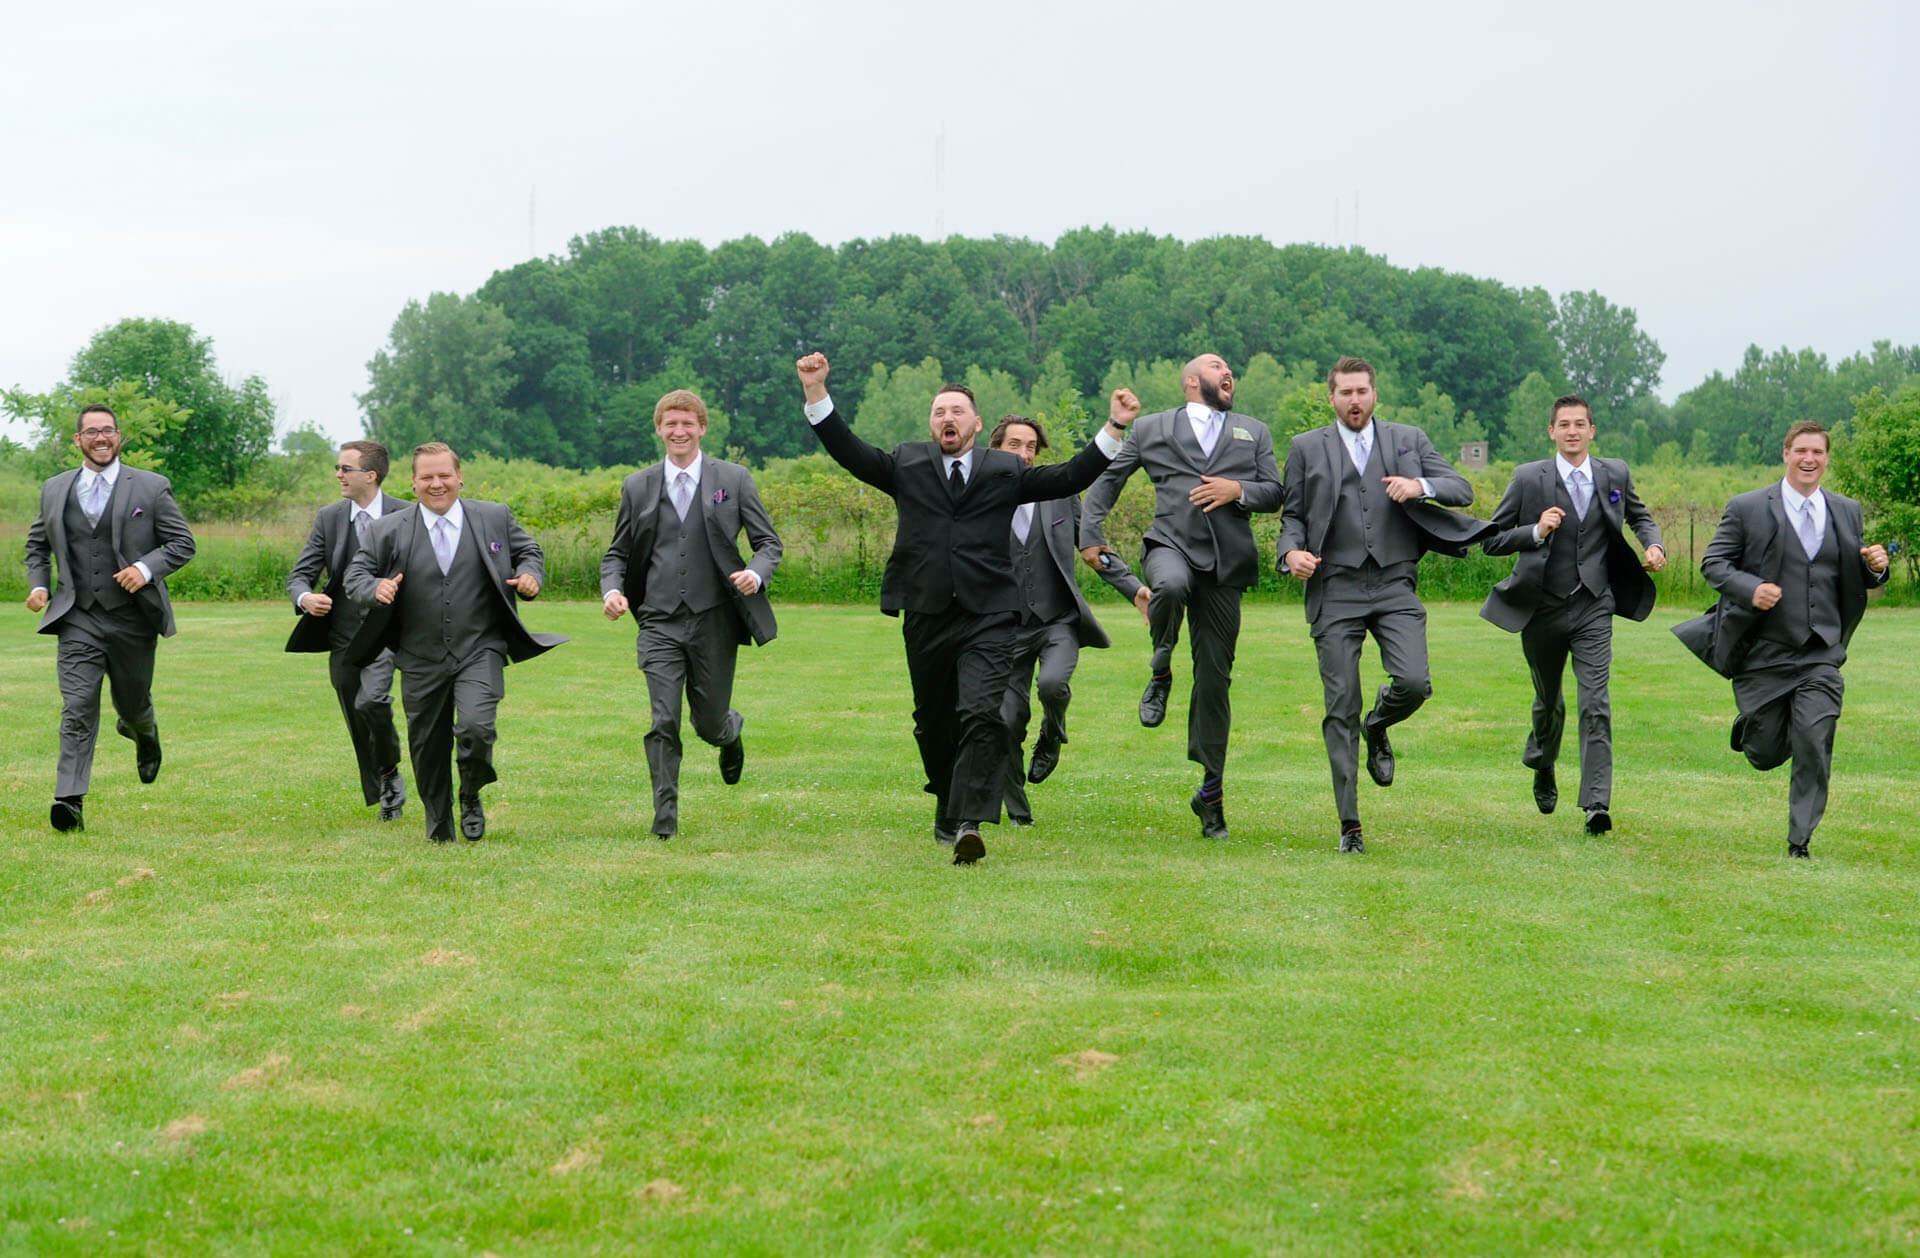 Epic Wedding portrait showing former track star groomsmen chasing each other in a field in Metro Detroit, Michigan.